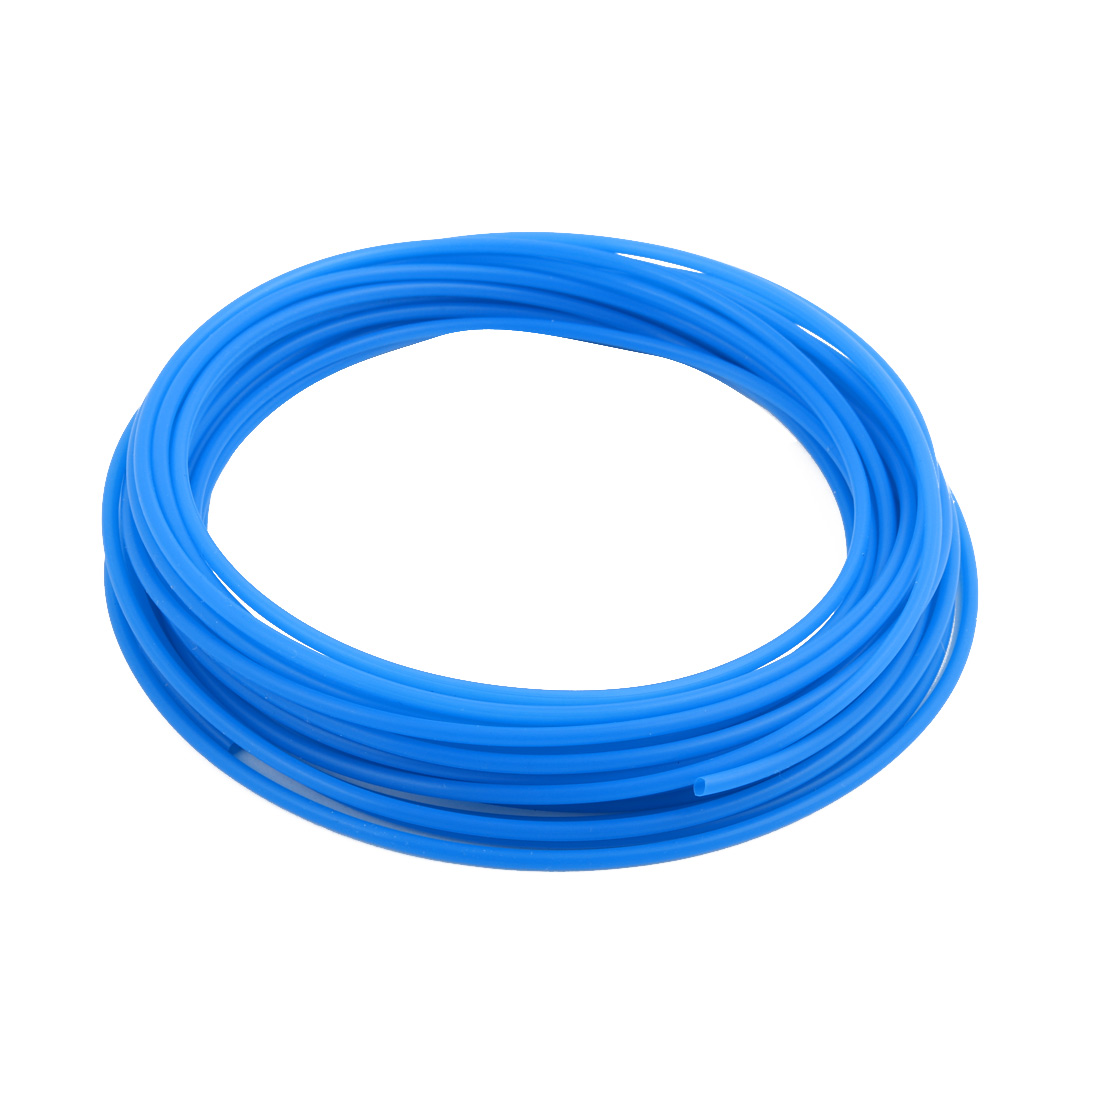 2.69mmx3.09mm PTFE Resistant High Temperature Blue Tubing 10 Meters 32.8Ft